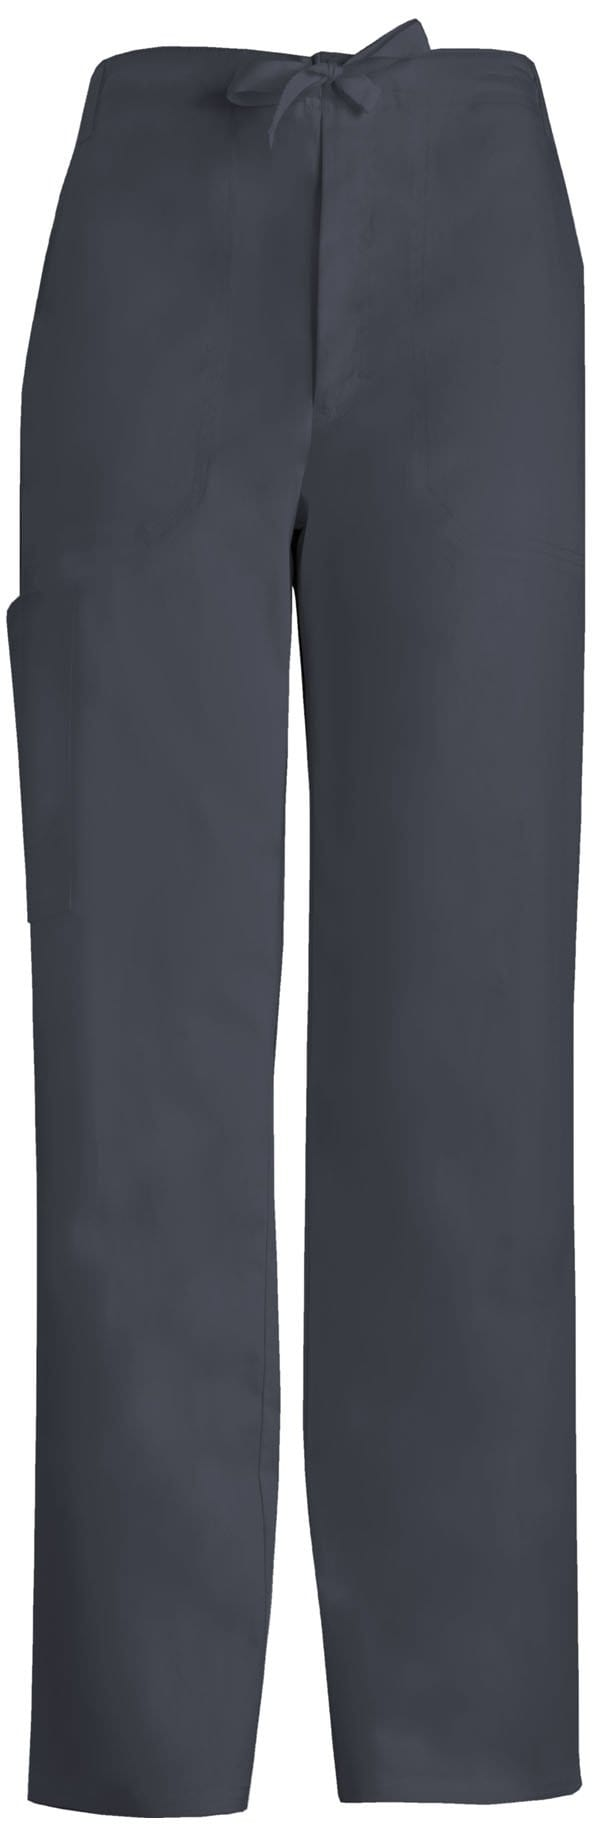 1022<br> Men's Fly Front Drawstring Pant